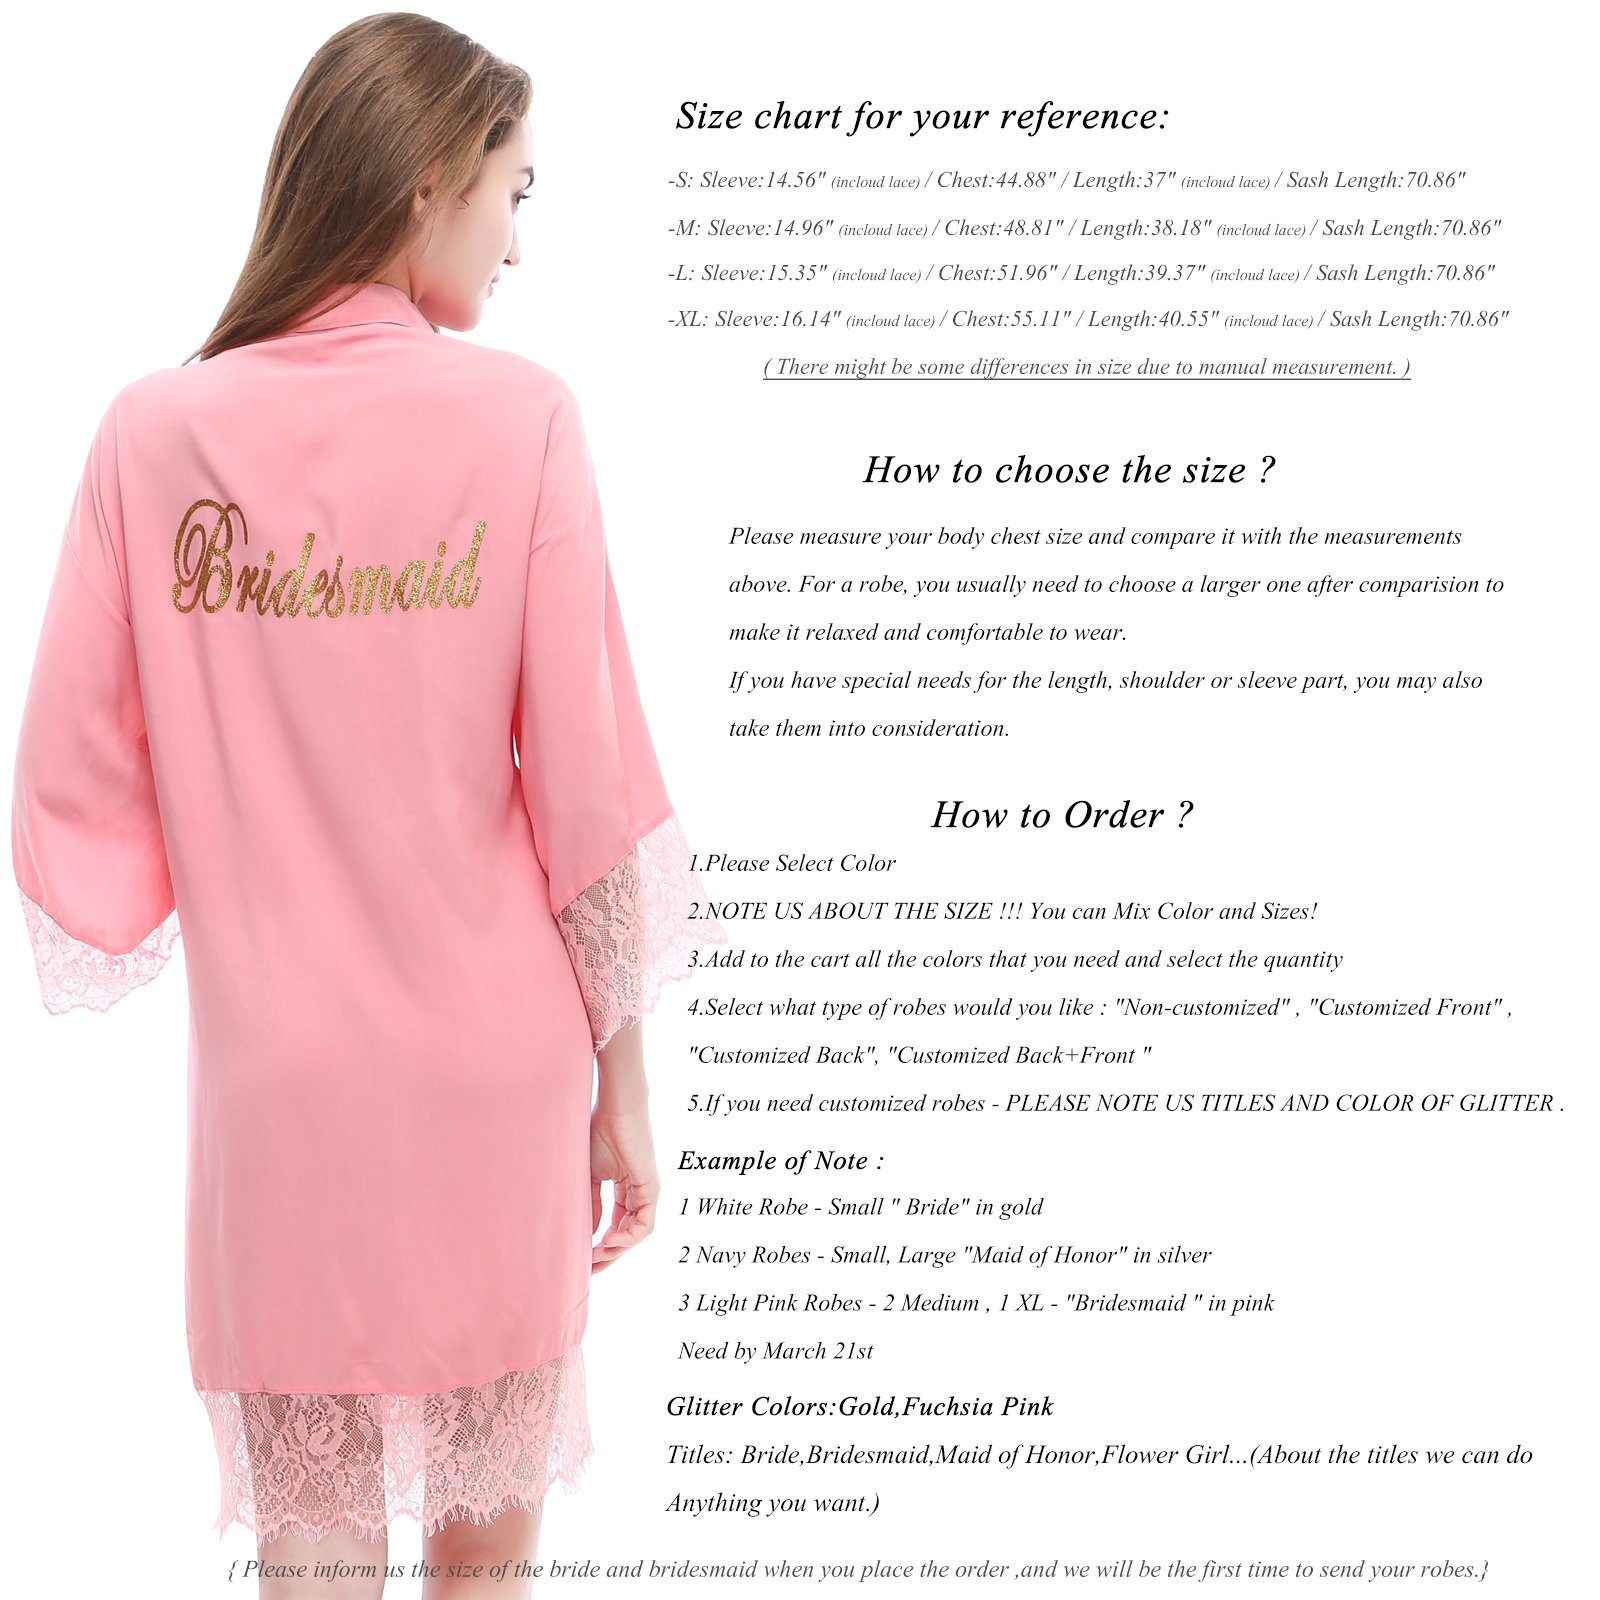 PROGULOVER Women's Set Of 10 Bridesmaid Robes For Wedding Cotton Kimono Bridal Party Getting Ready Robe With Blush Gold Glitter by PROGULOVER (Image #3)